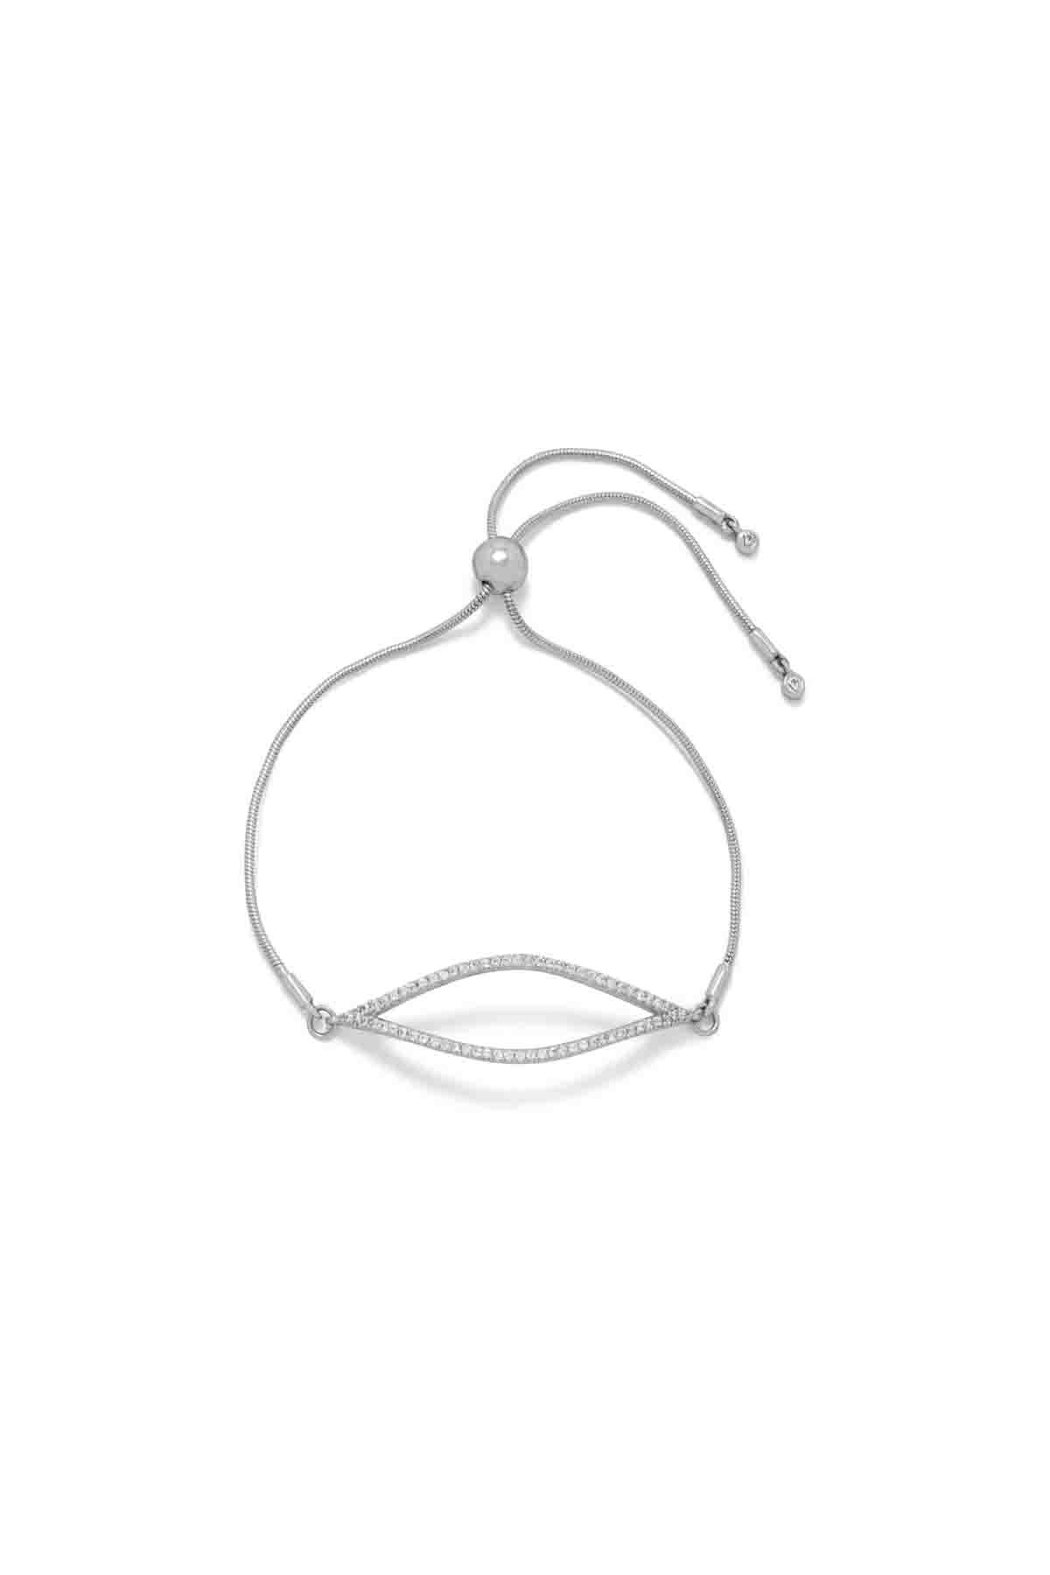 MMA Silver Marquise Bolo Bracelet - Main Image